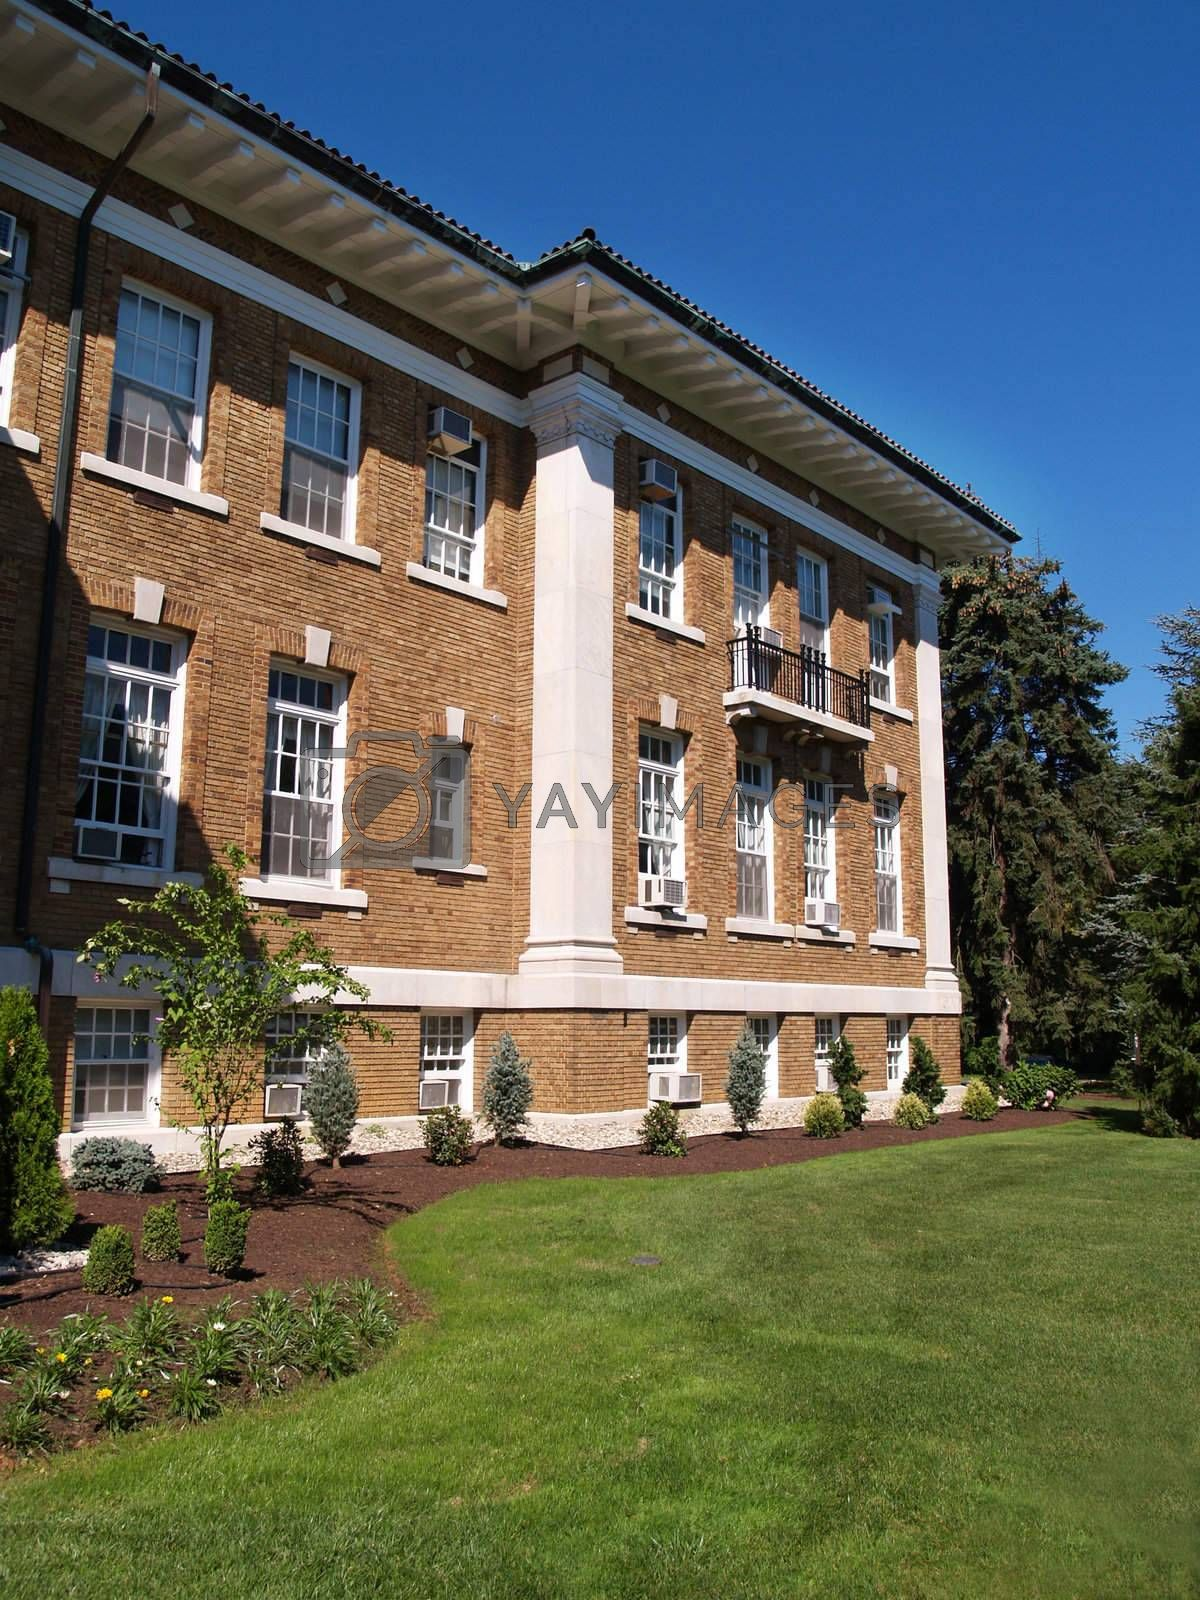 exterior of an old red brick building on a college campus